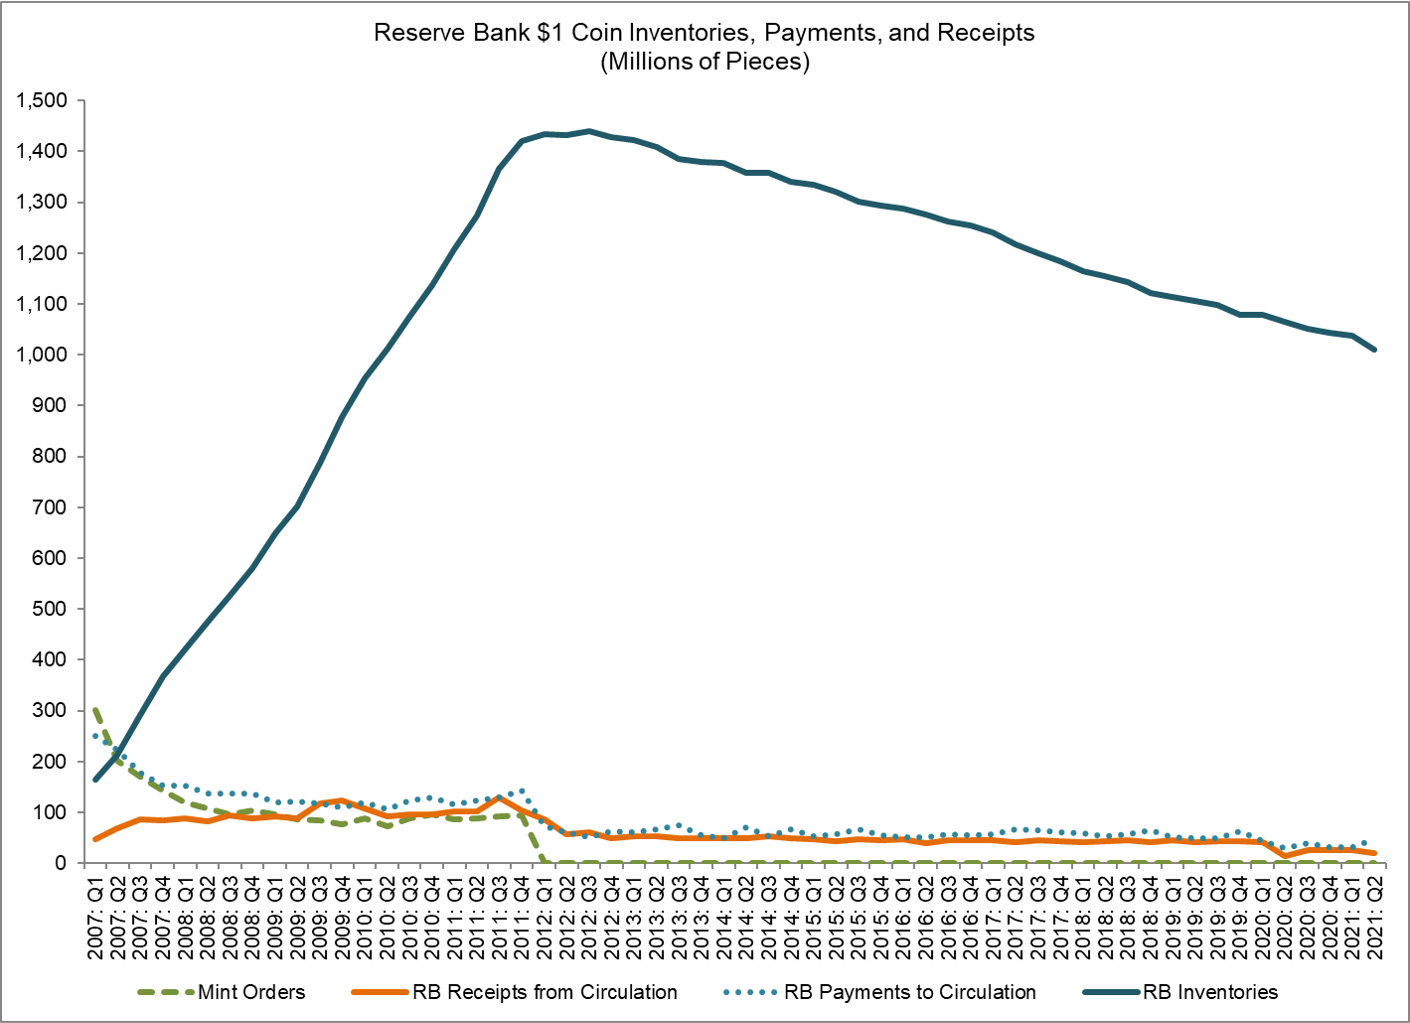 Reserve Bank Quarterly $1 Coin Inventories, Payments, and Receipts. Details are available from the data table links above.